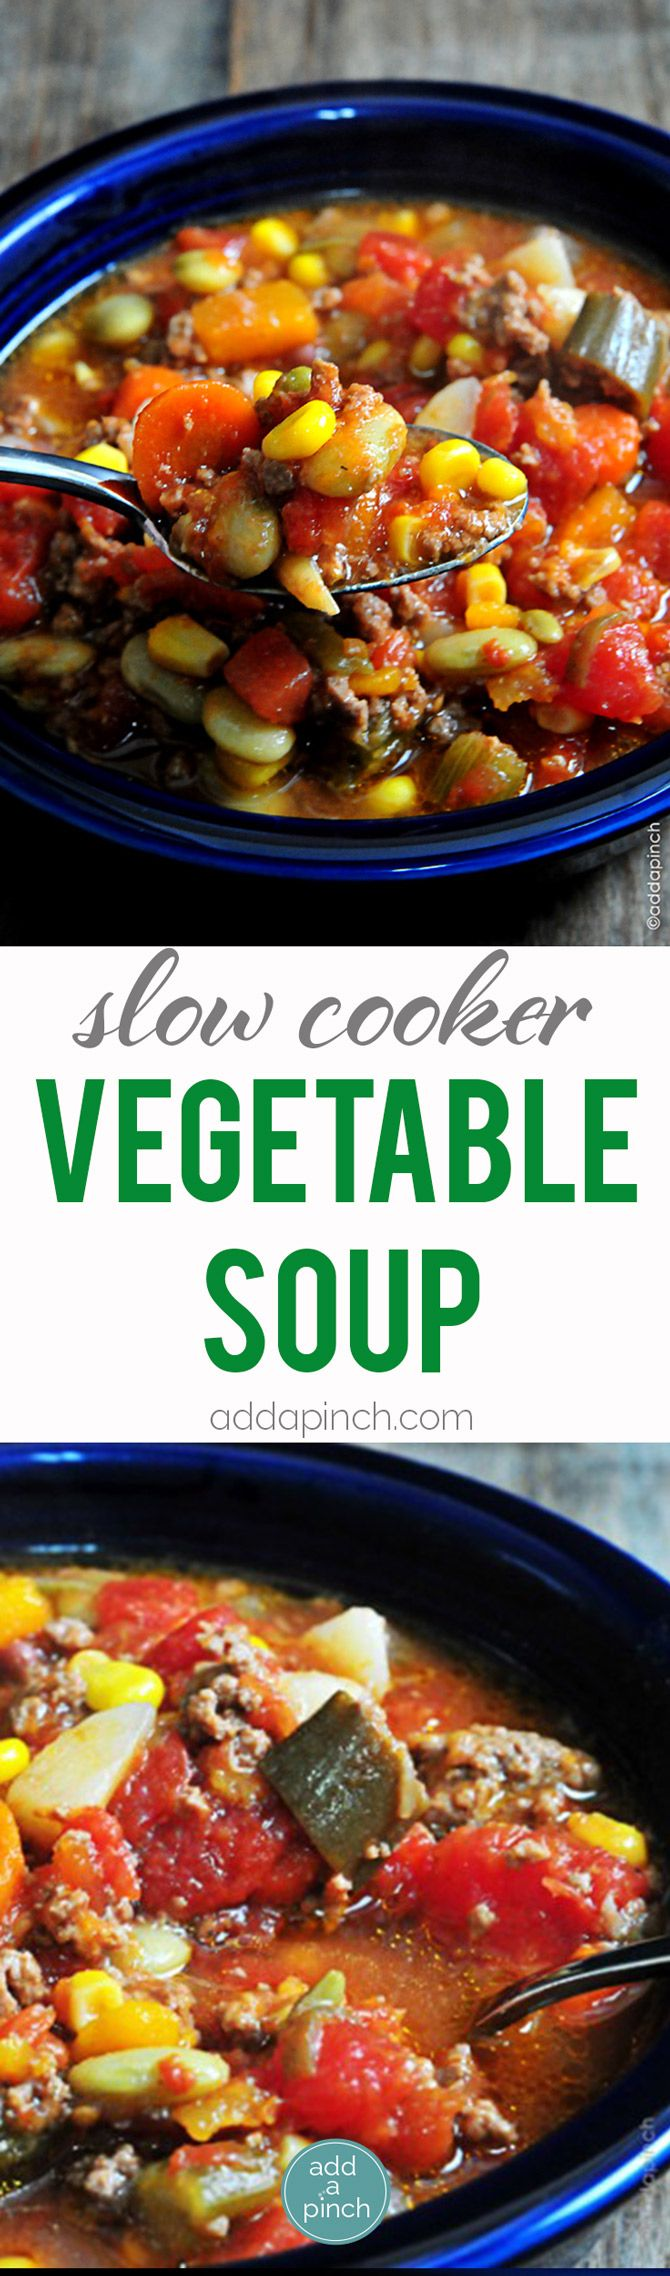 Slow Cooker Vegetable Soup - This Slow Cooker Vegetable Soup recipe is so simple…